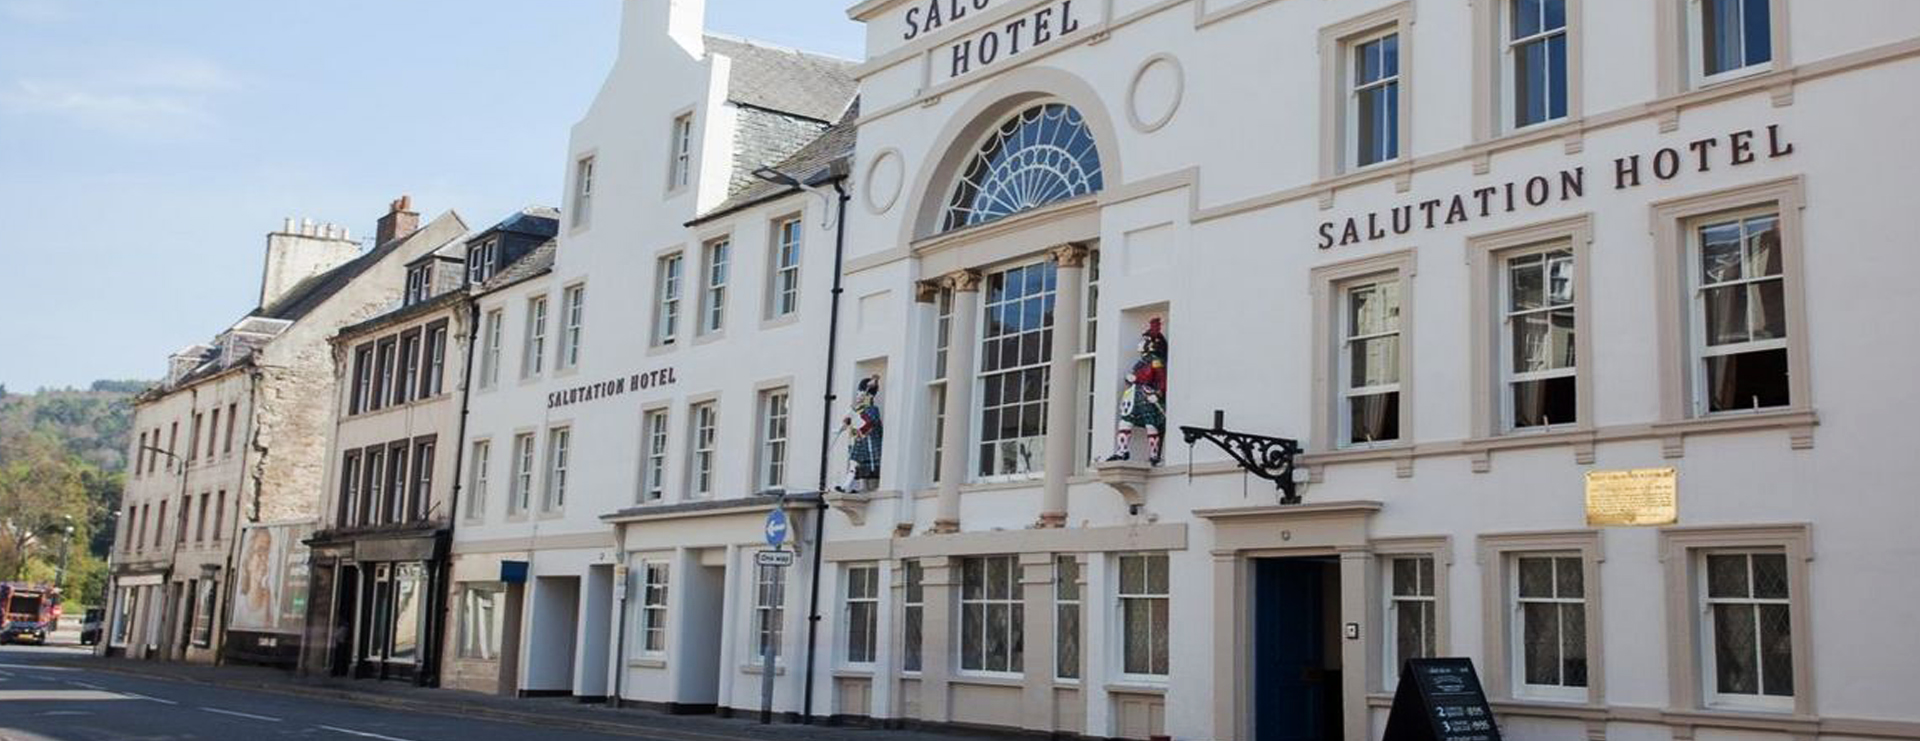 Jacobite Tours Salutation Hotel Perth